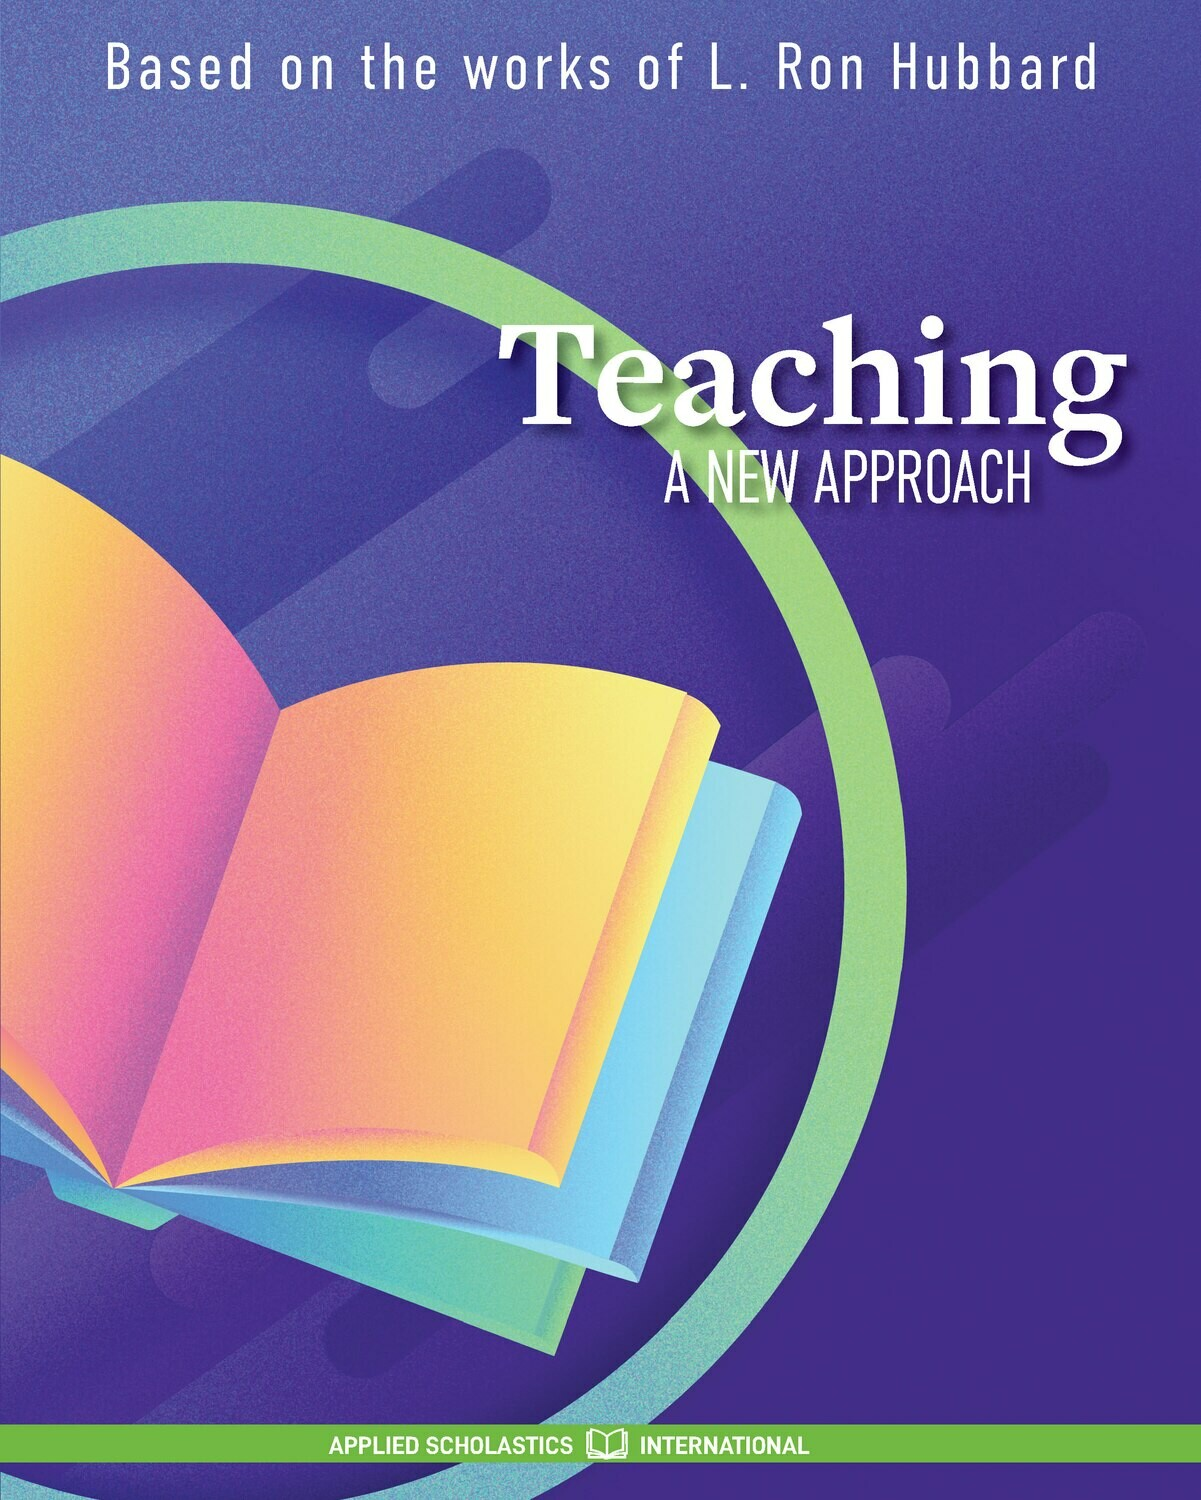 Teaching - A New Approach